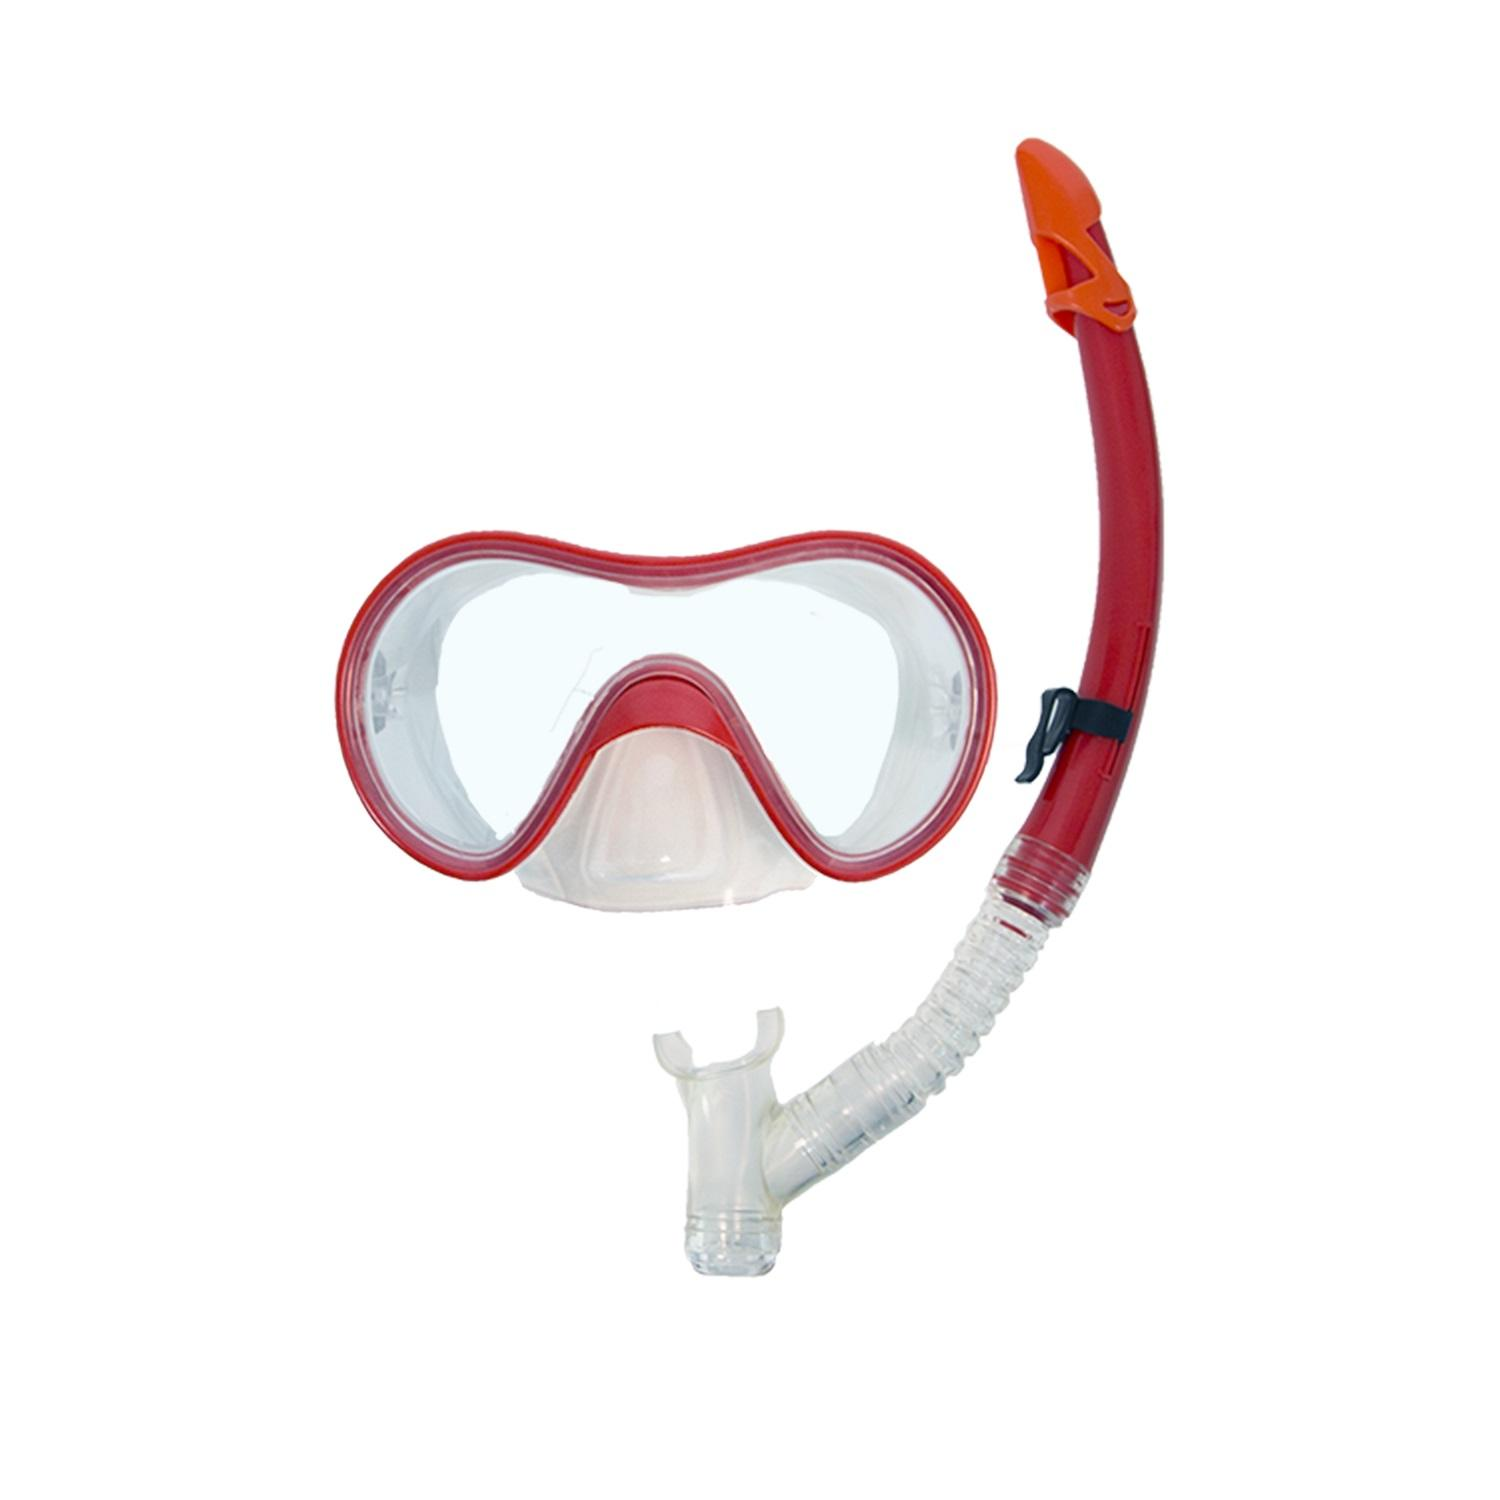 Bright Red Expedition Swimming Mask and Dry Snorkel Set for Teens Adults by Swim Way